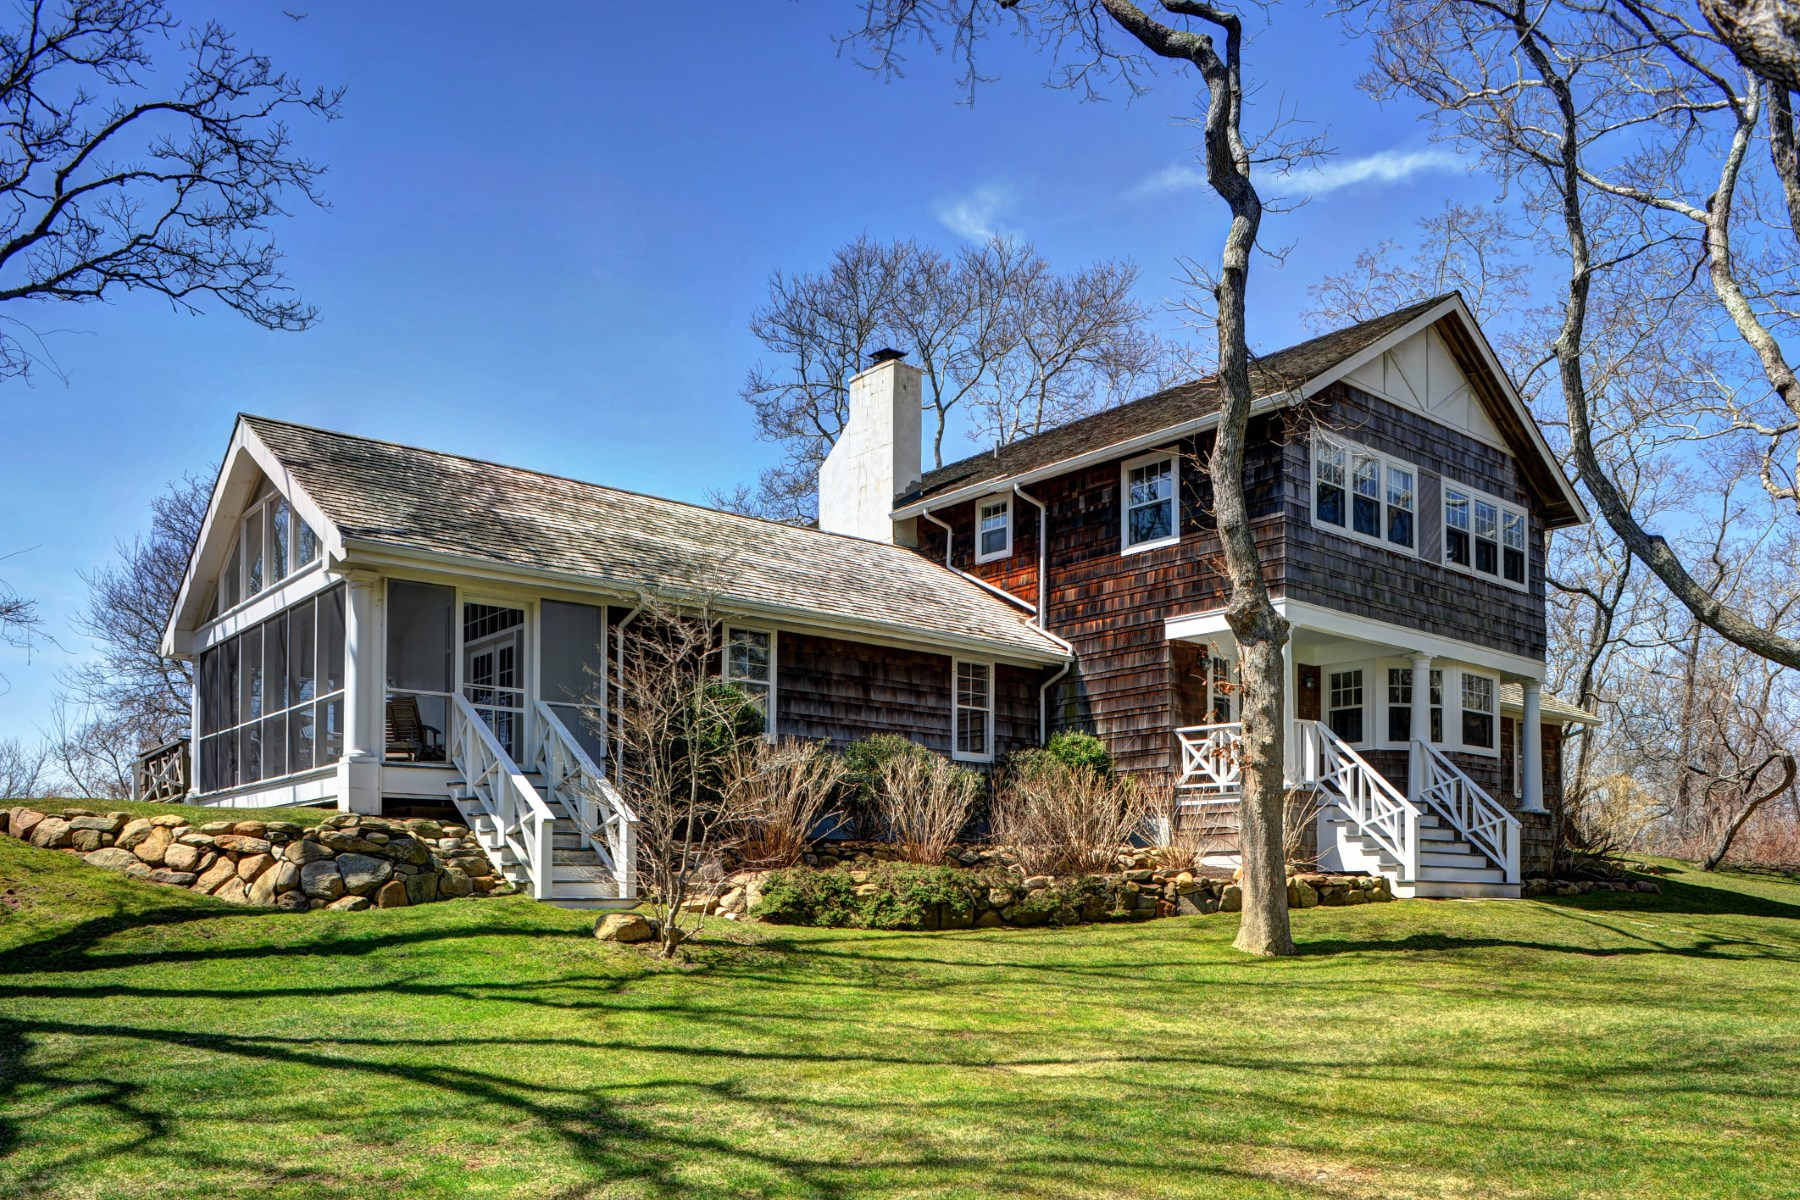 Single Family Home for Sale at Georgica Association Wainscott, New York 11975 United States